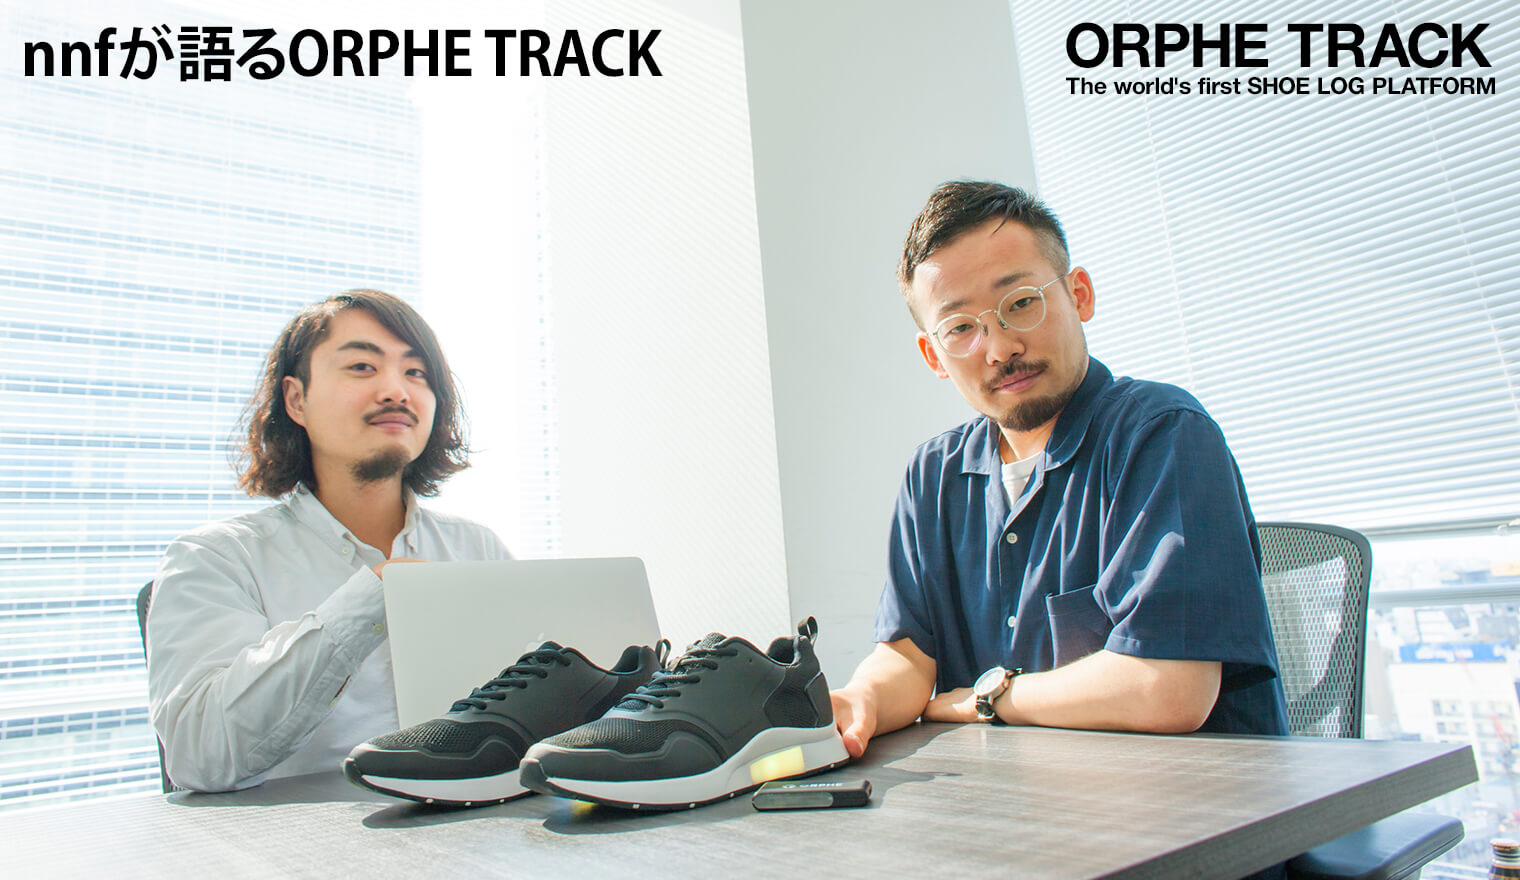 nnfが語るORPHE TRACK